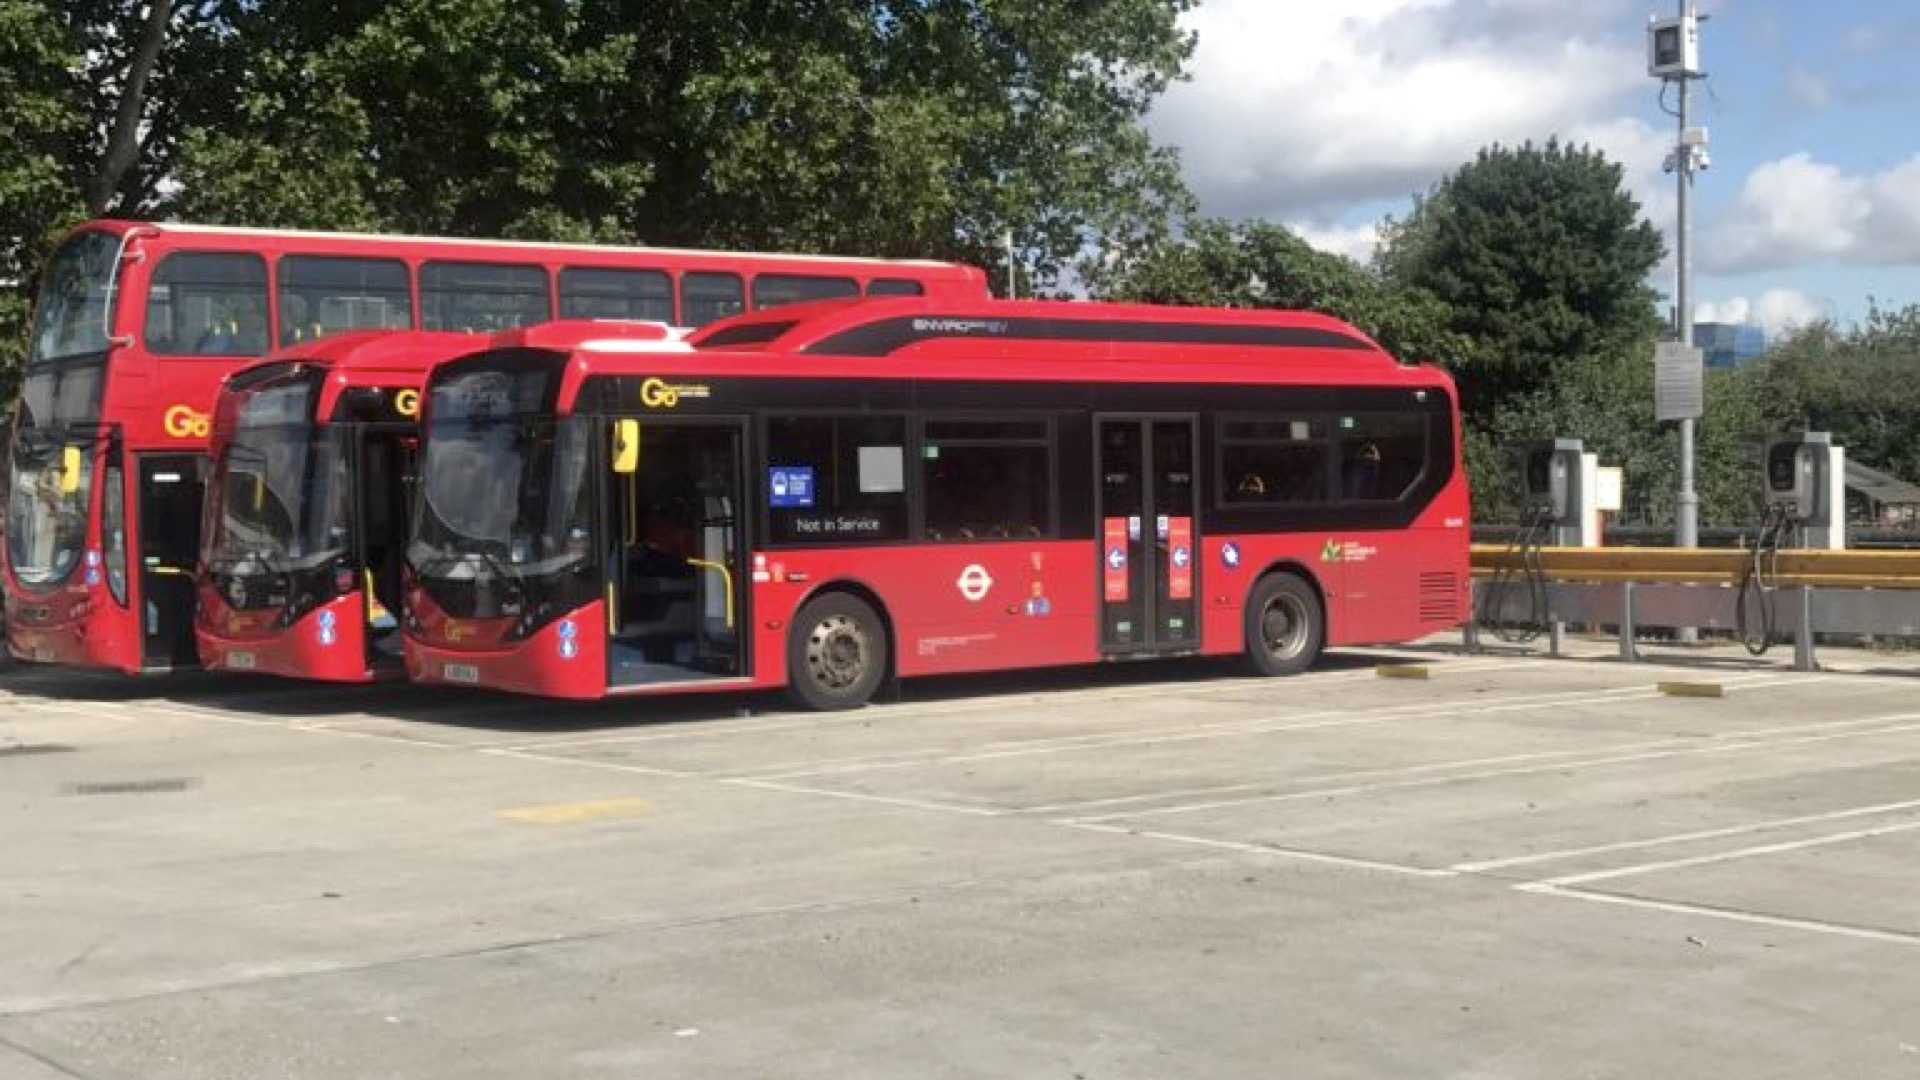 V2G trial of electric double-decker buses  -  Northumberland Park, UK